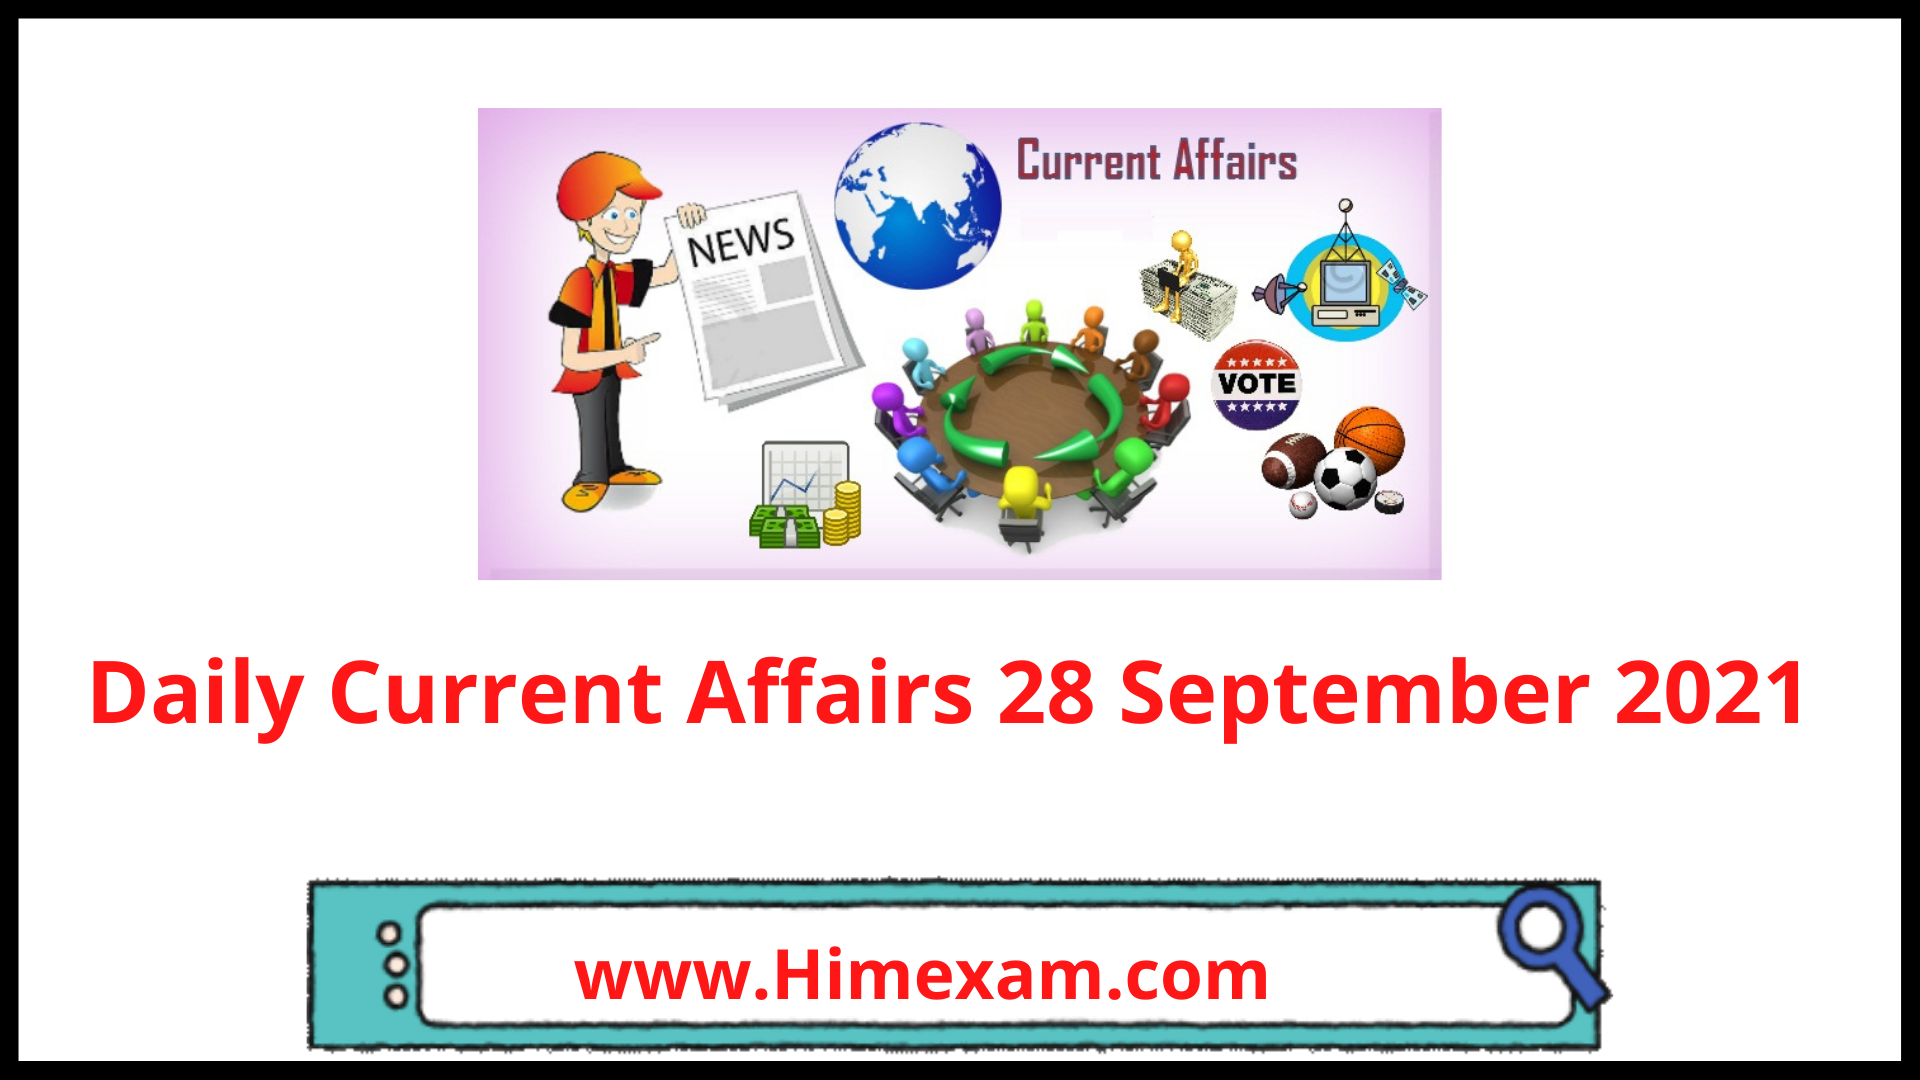 Daily Current Affairs 28 September 2021